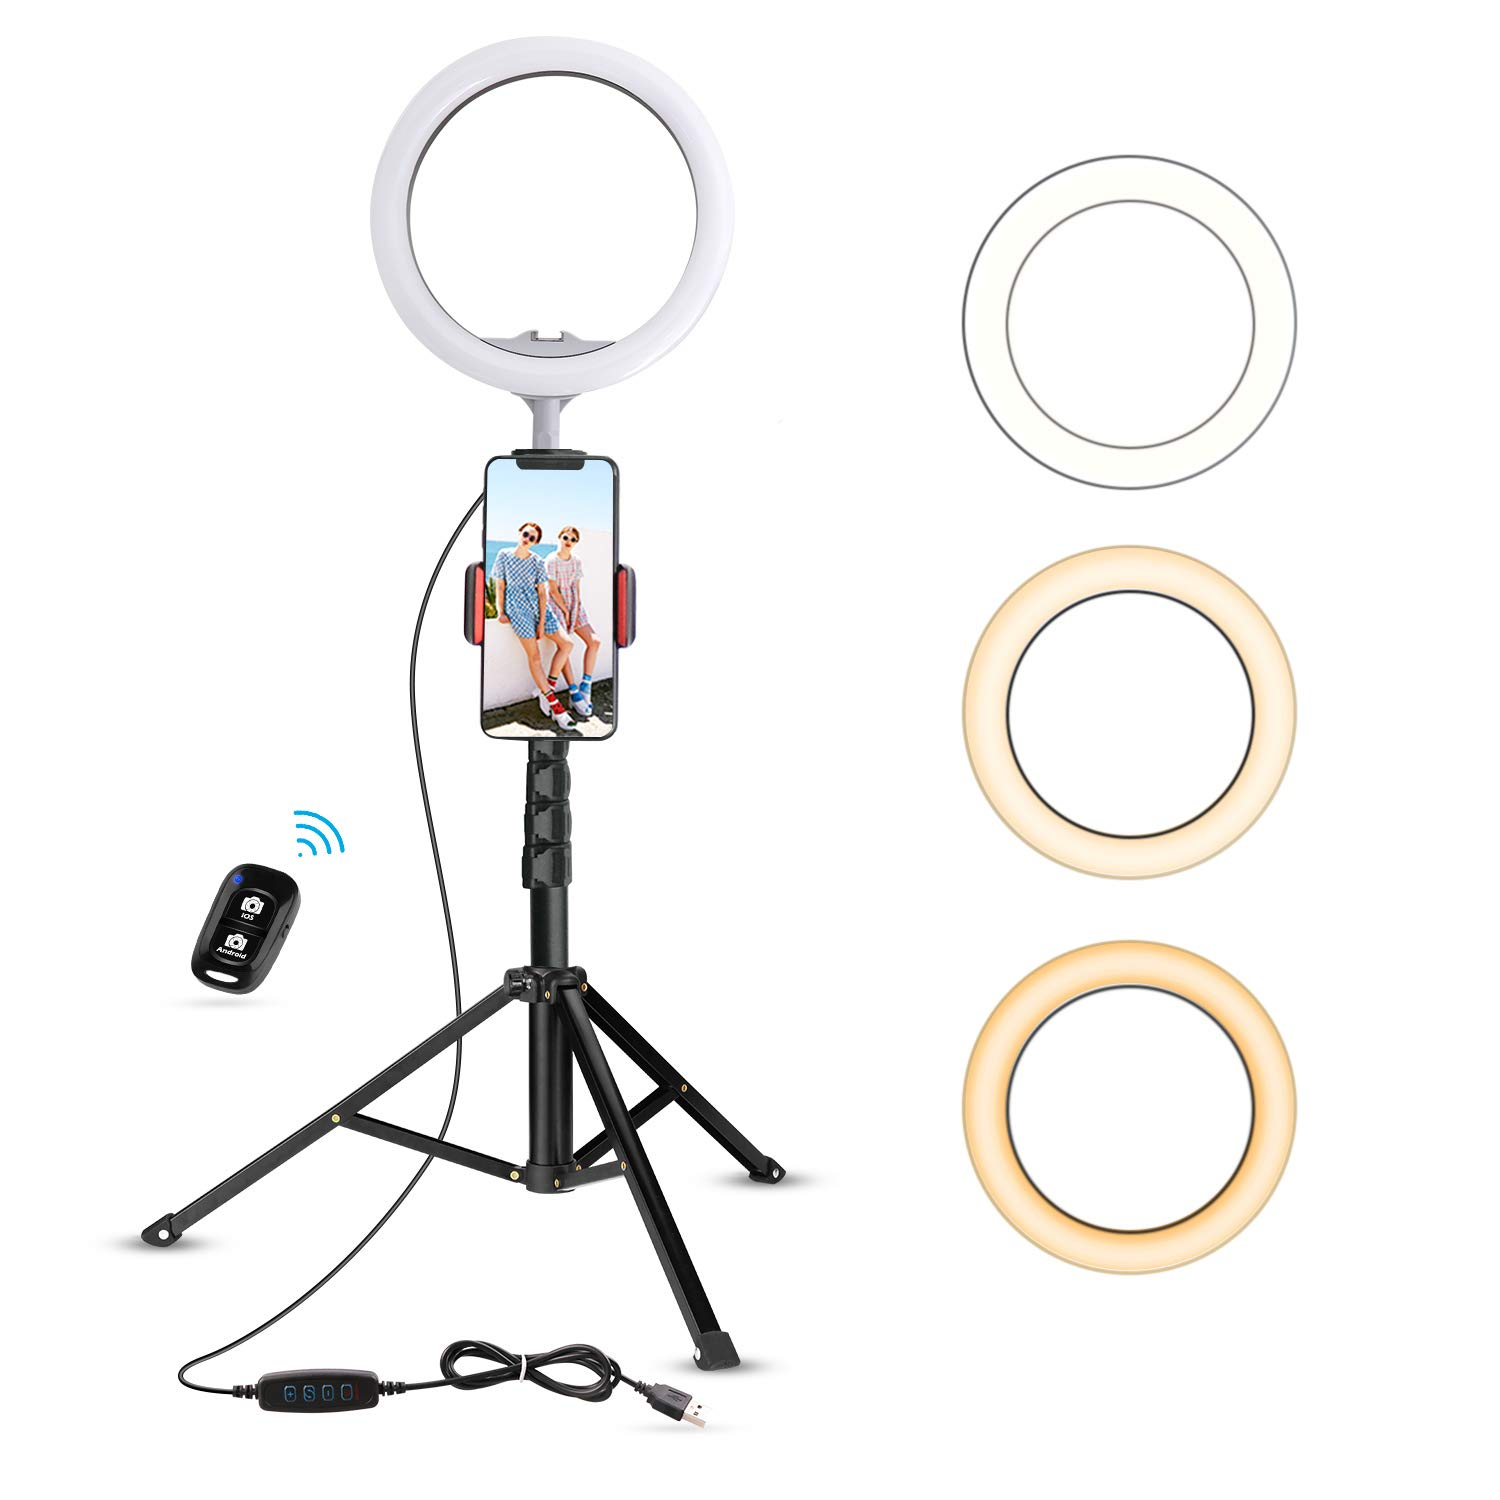 UBeesize 10.2'' Selfie Ring Light with Tripod Stand & Cell Phone Holder for Live Stream/Makeup, Mini Led Camera Ringlight for YouTube Video/Photography Compatible with iPhone Android (Upgraded) by UBeesize